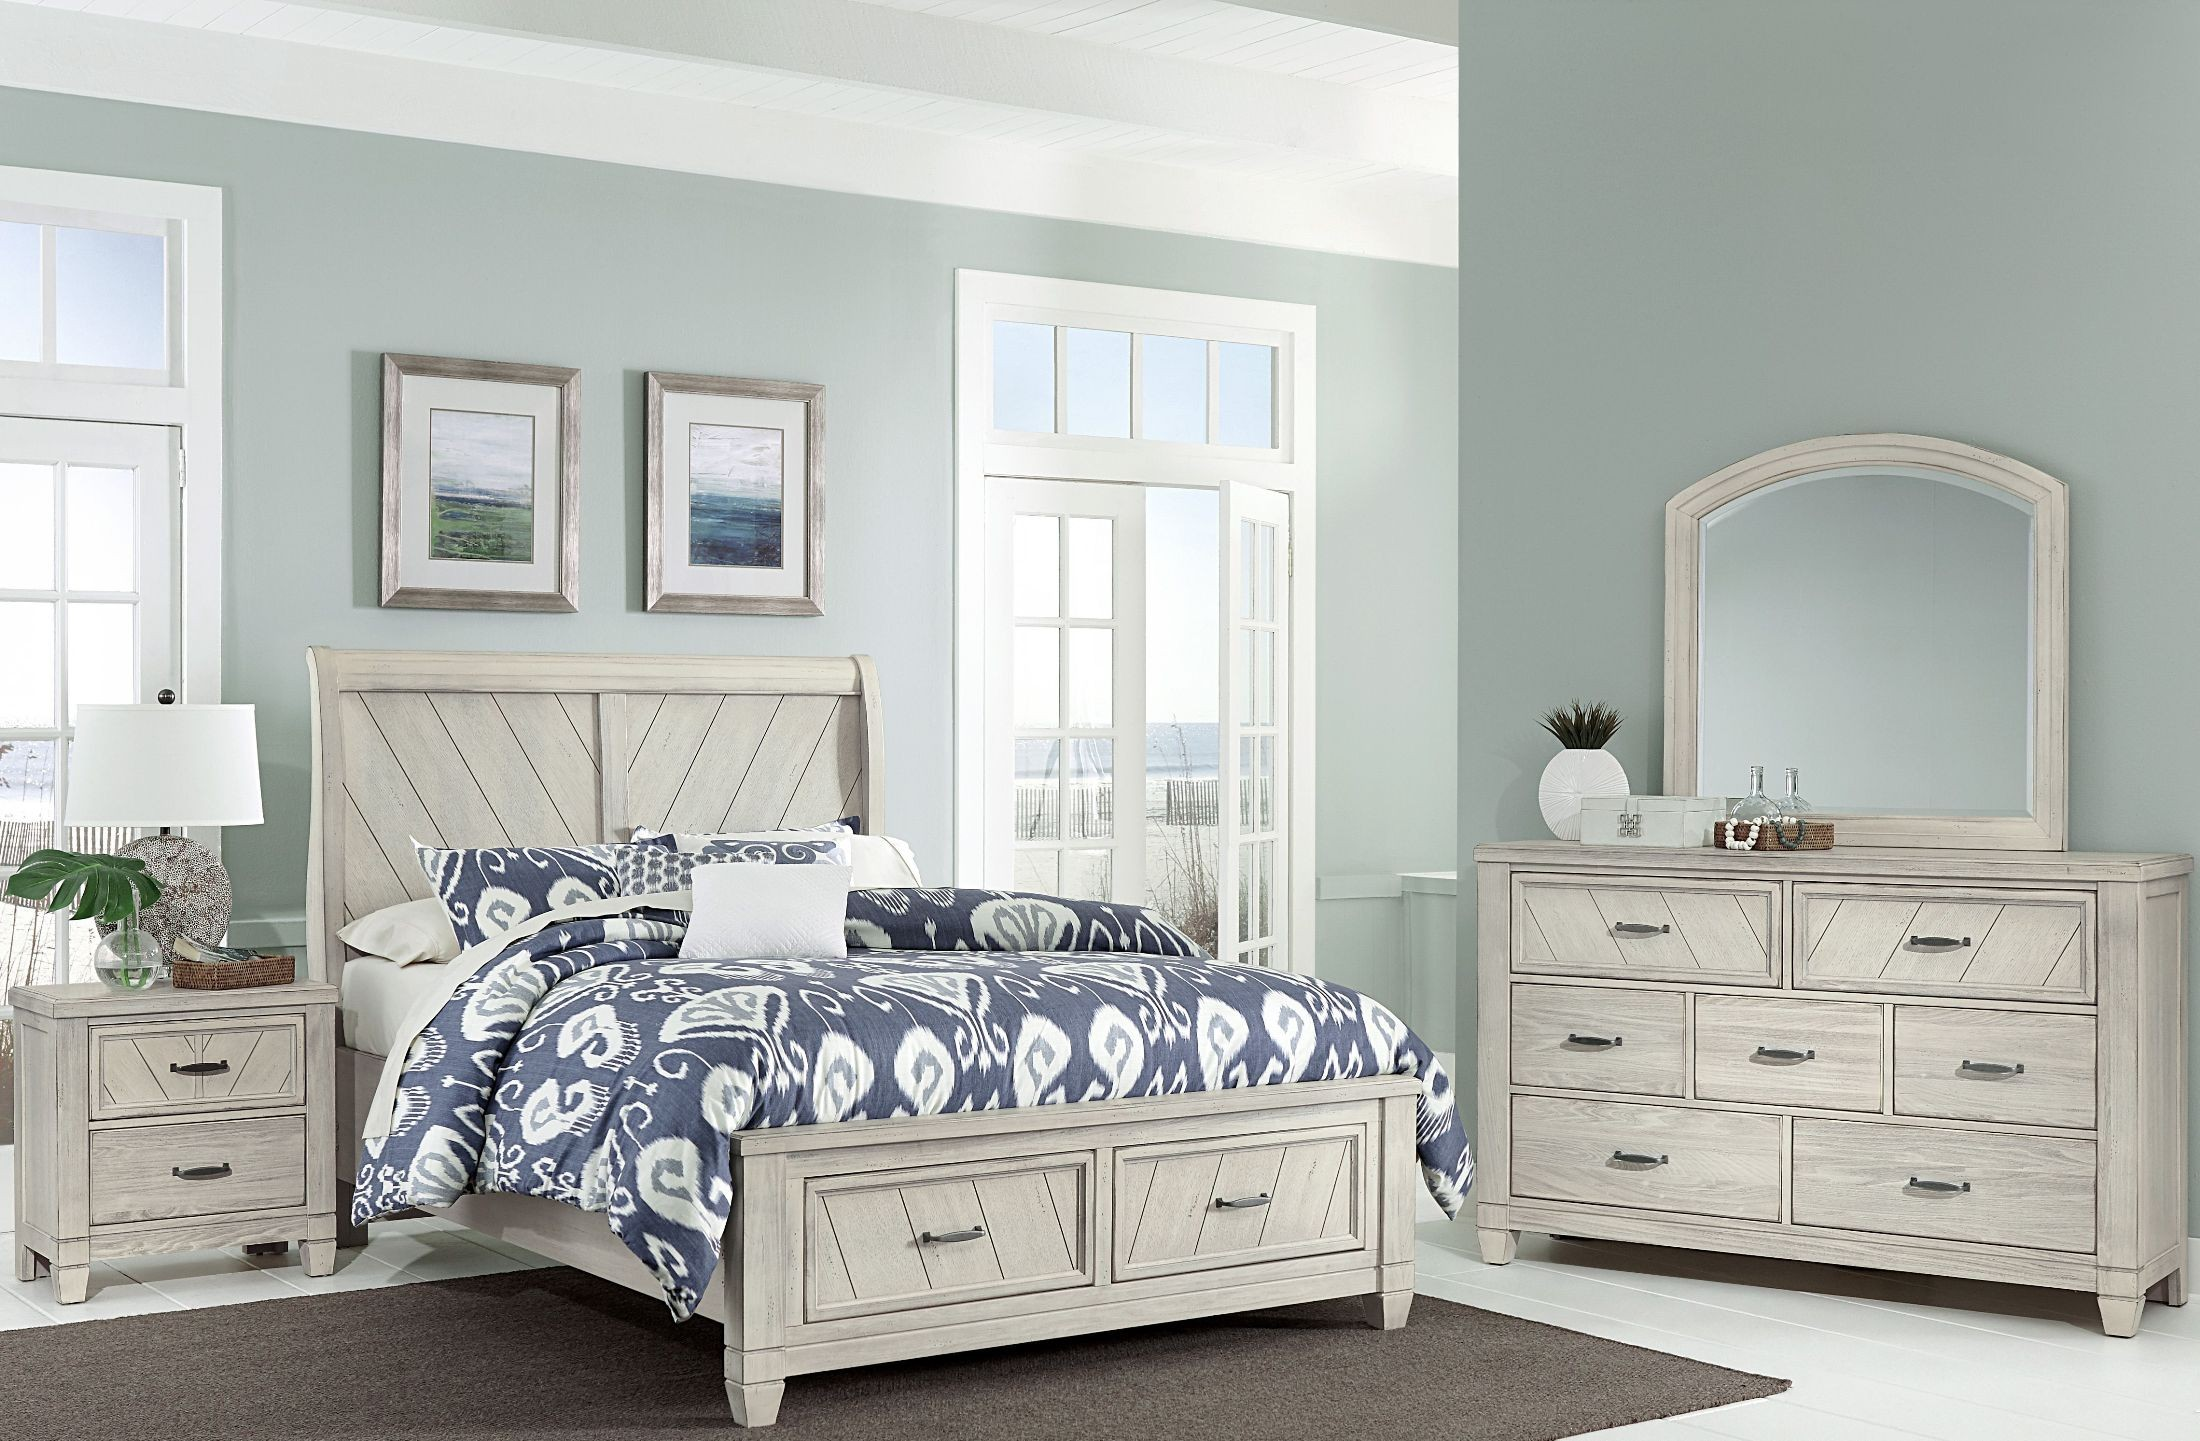 Rustic Cottage Rustic White Sleigh Storage Bedroom Set From Virginia House Coleman Furniture